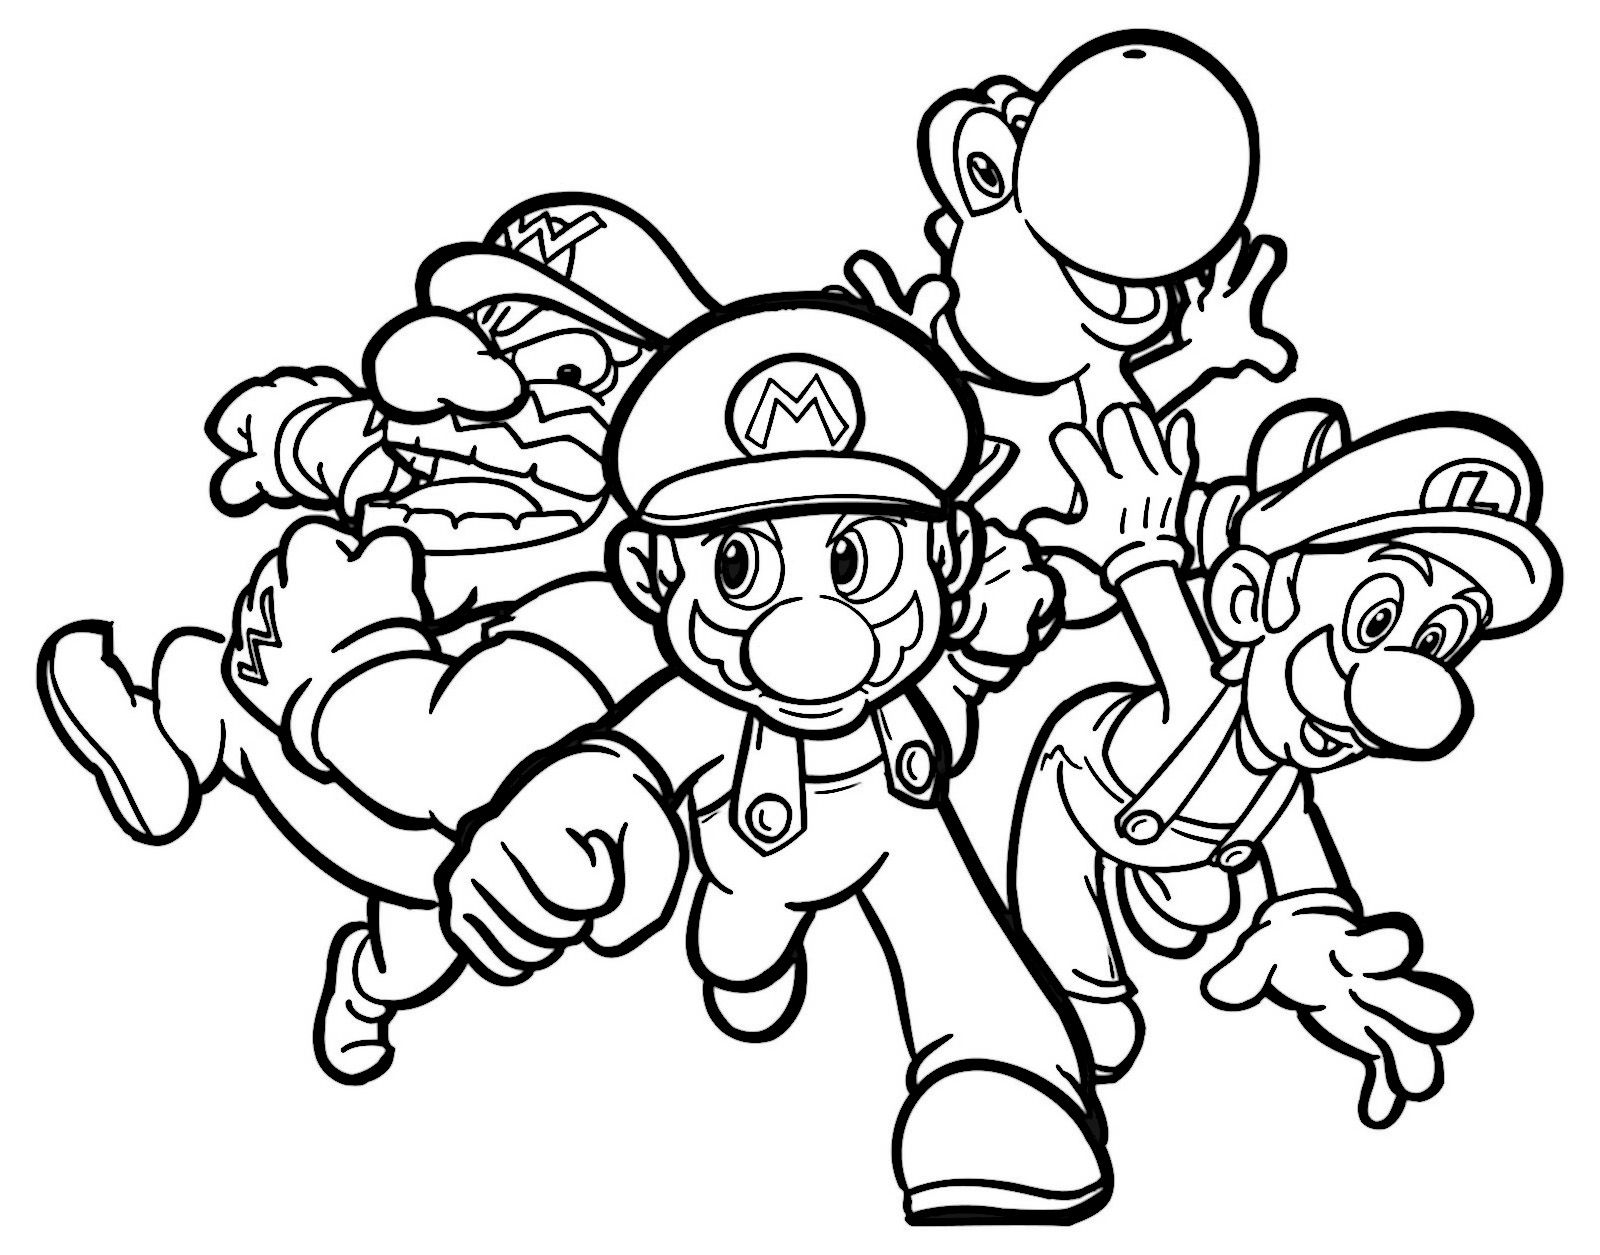 Mario Bross Coloring Pages 2 Coloring pages for kids Pinterest